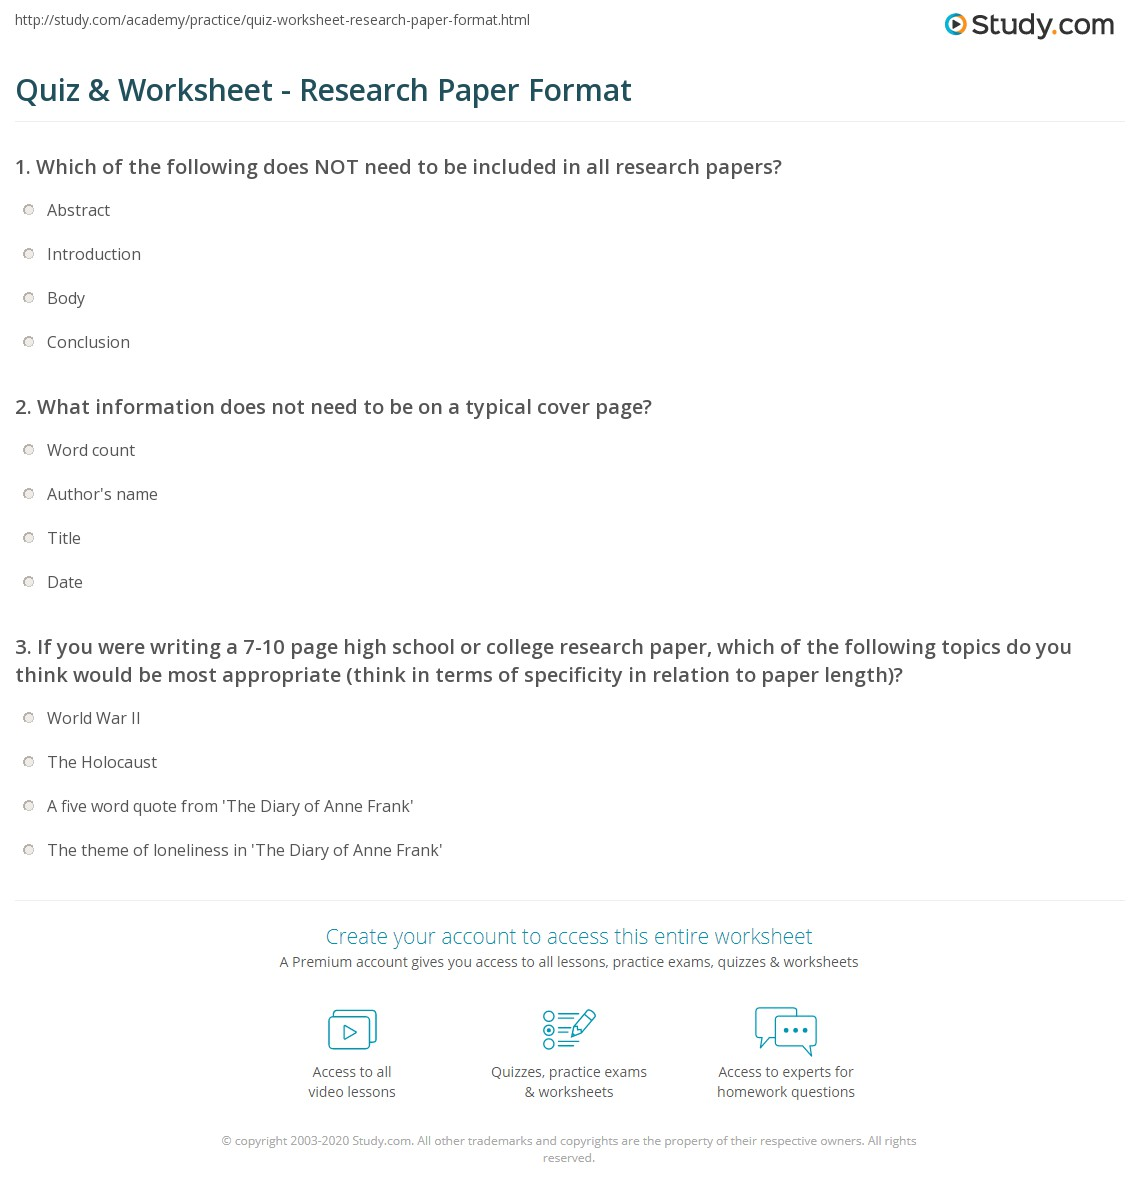 Quiz & Worksheet - Research Paper Format | Study com